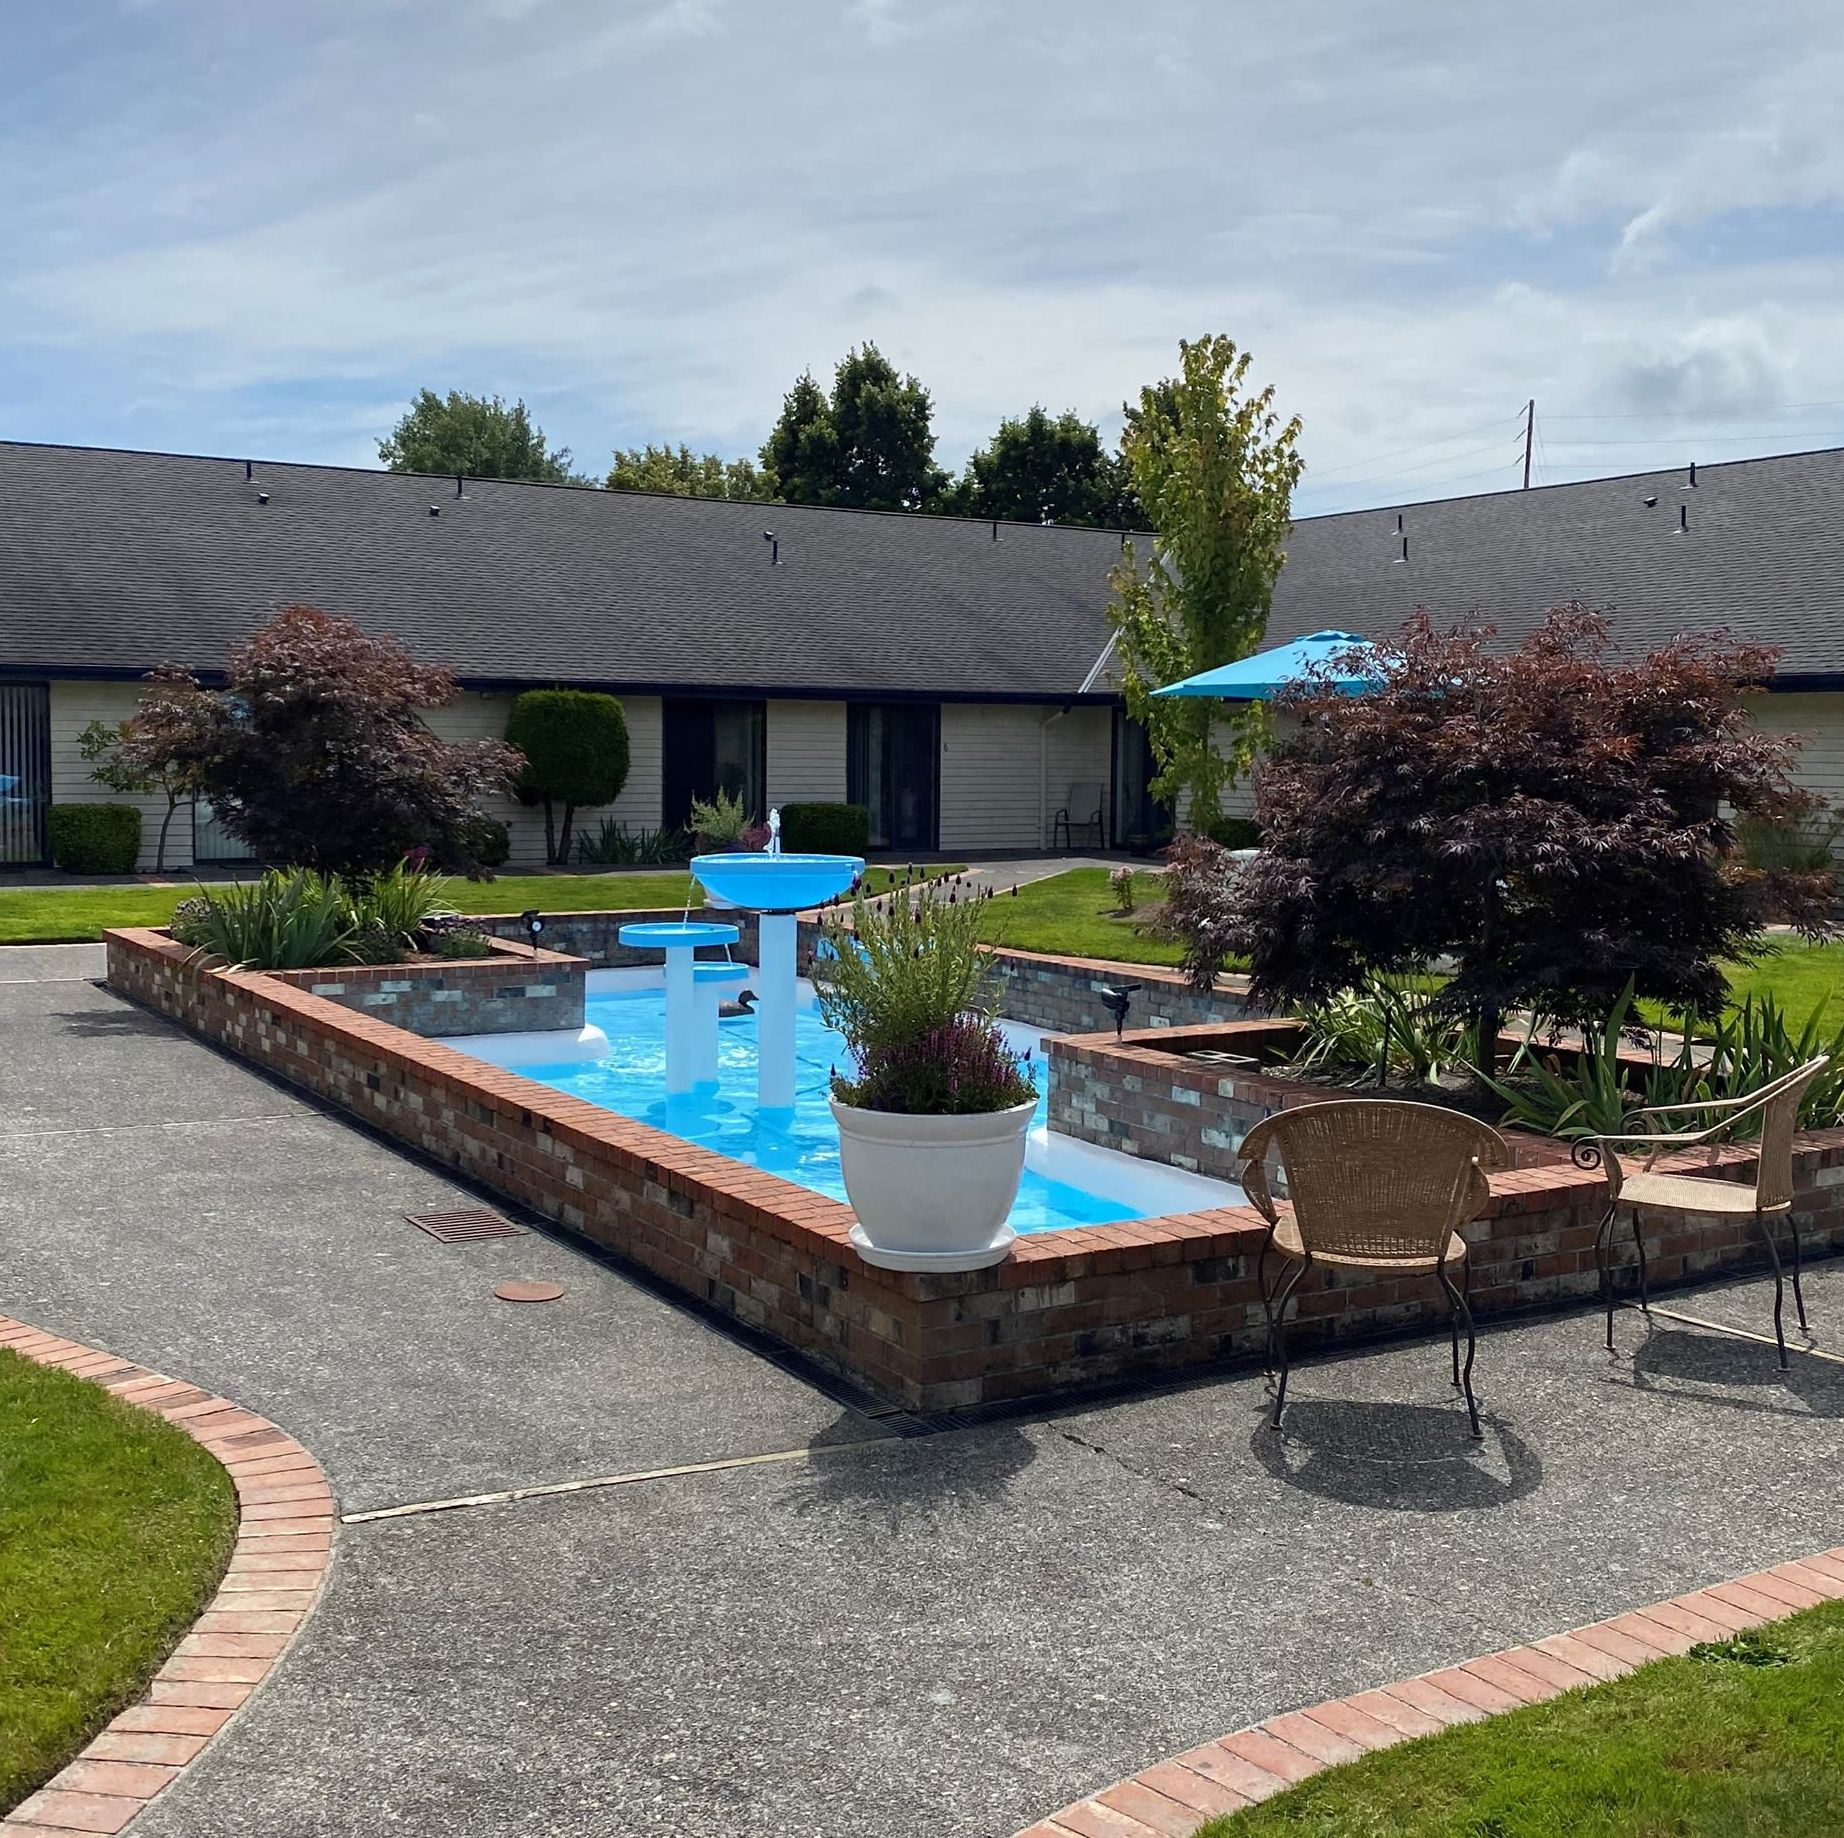 Logan Creek Retirement Community Senior living in Mount Vernon, WA